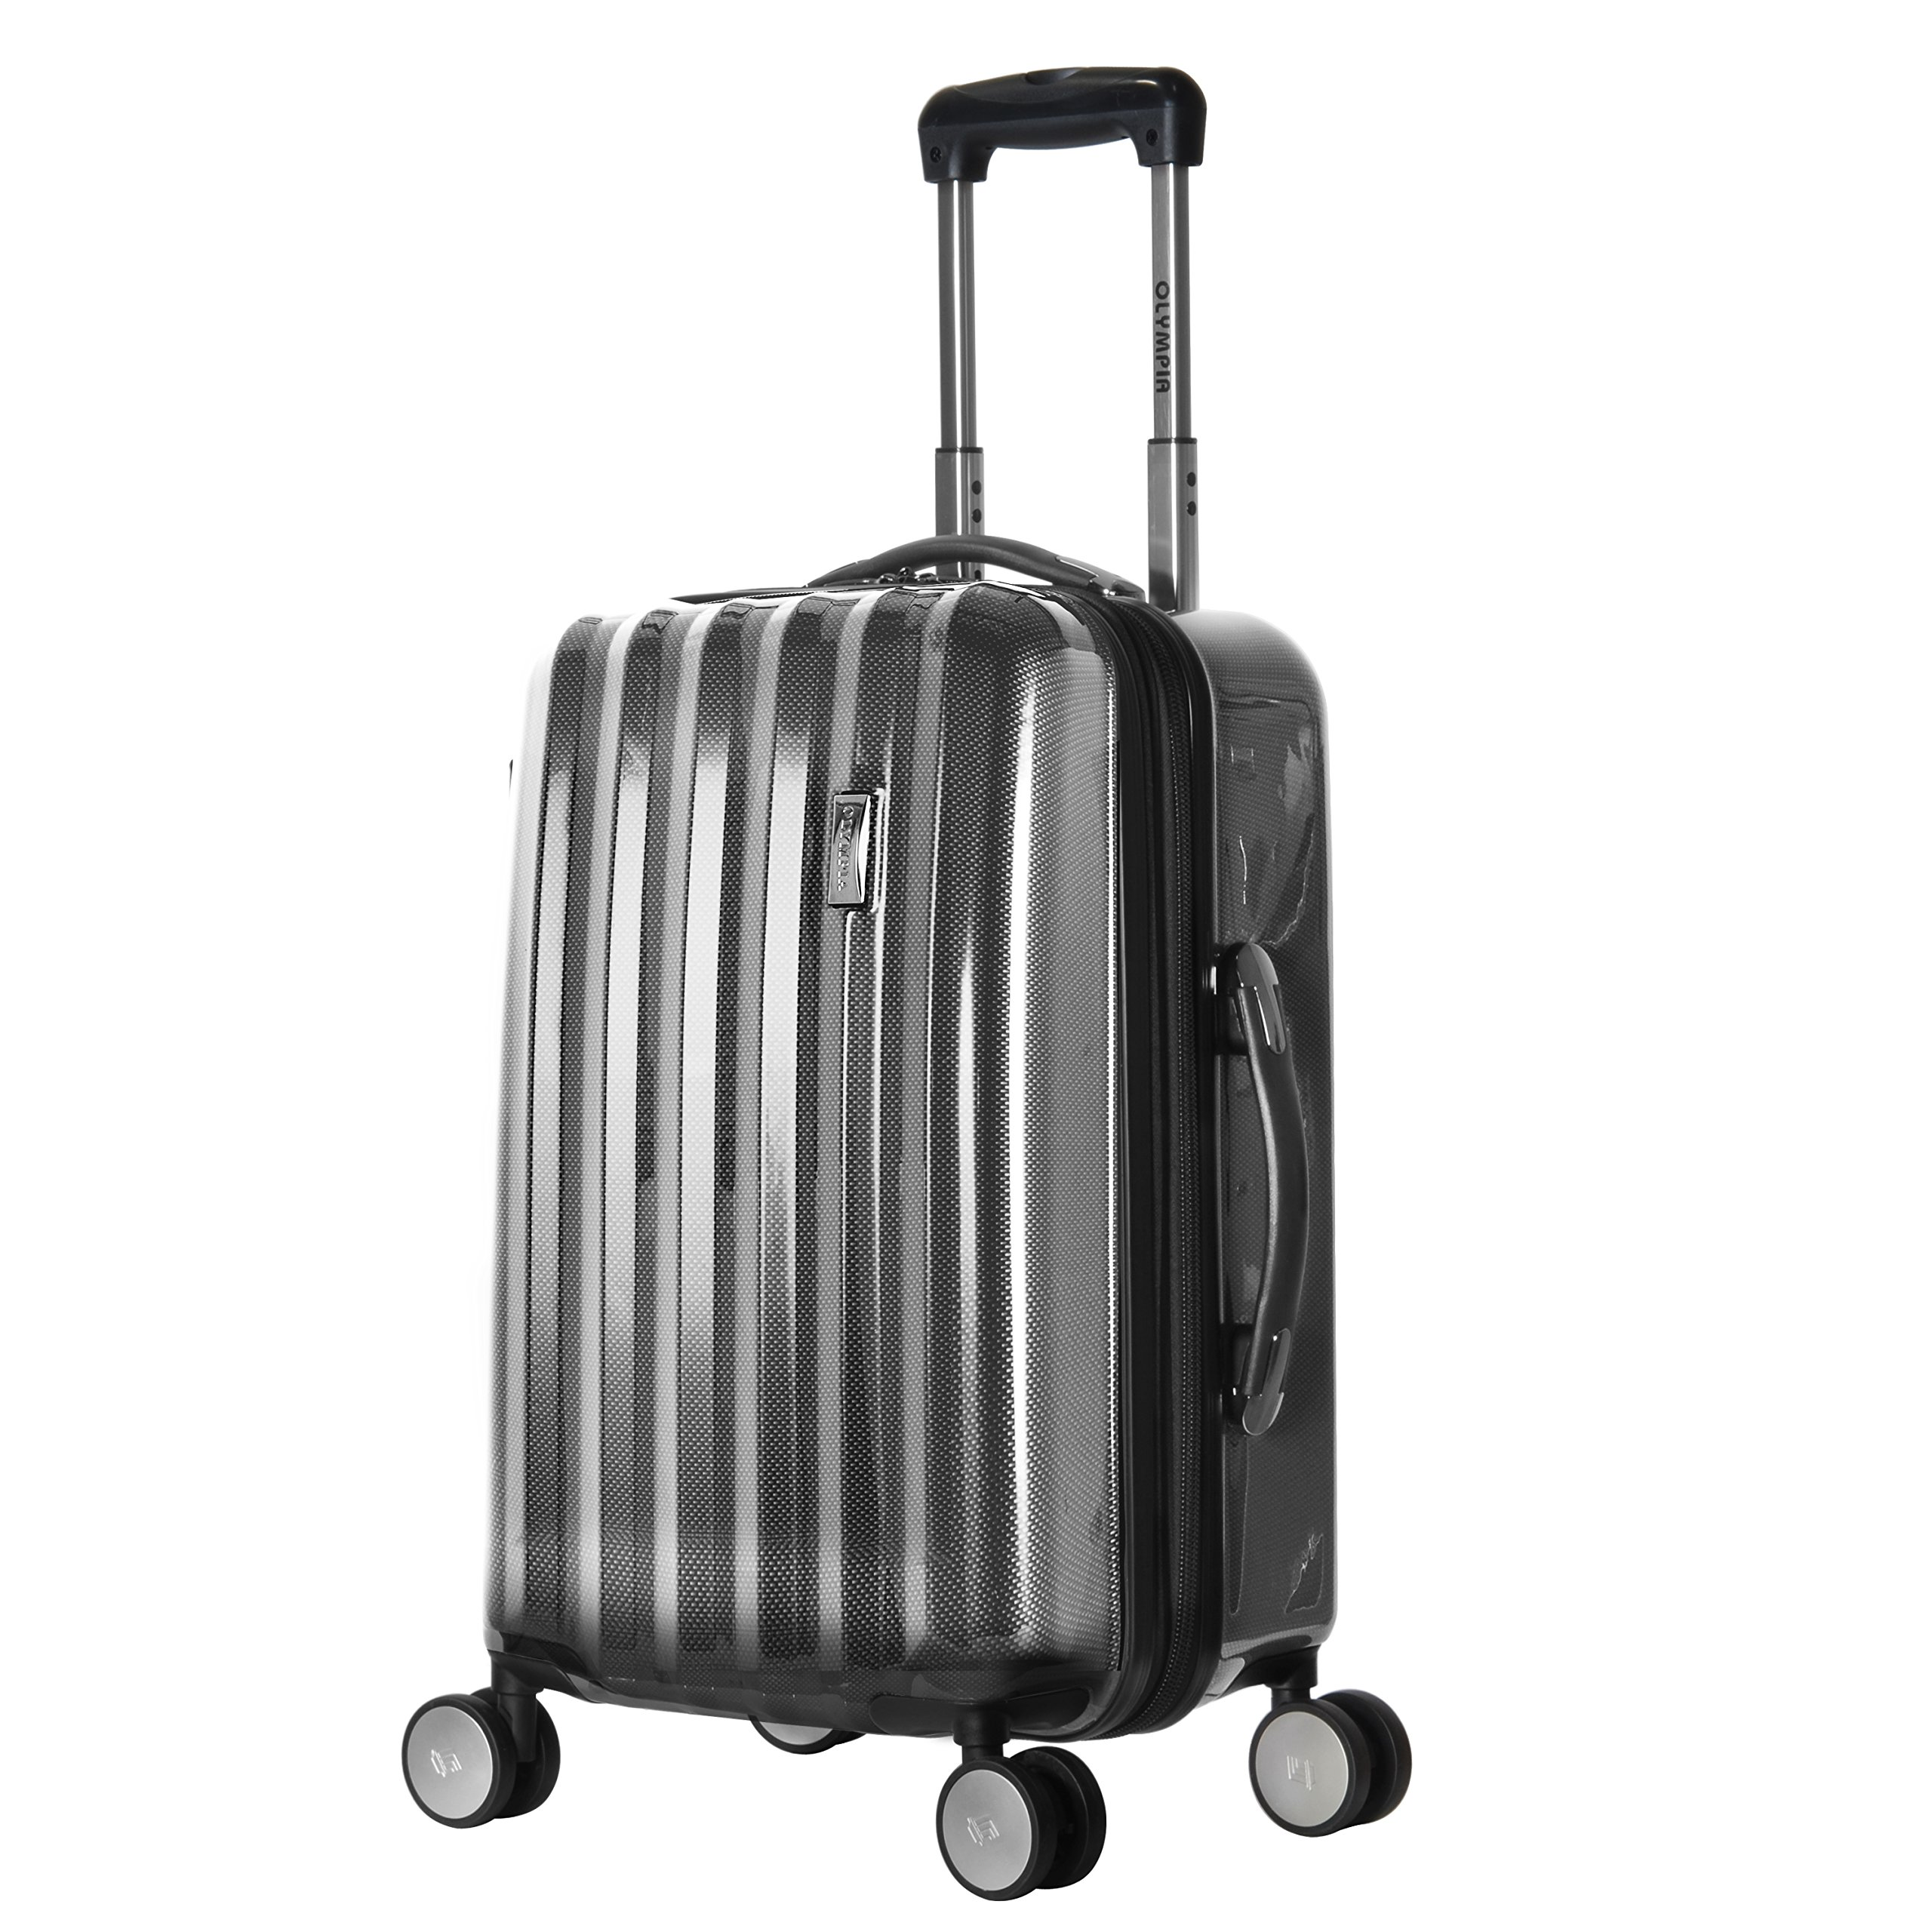 Olympia Luggage Titan 21 Inch Expandable Carry-On Hardside Spinner, Black, One Size by Olympia (Image #1)